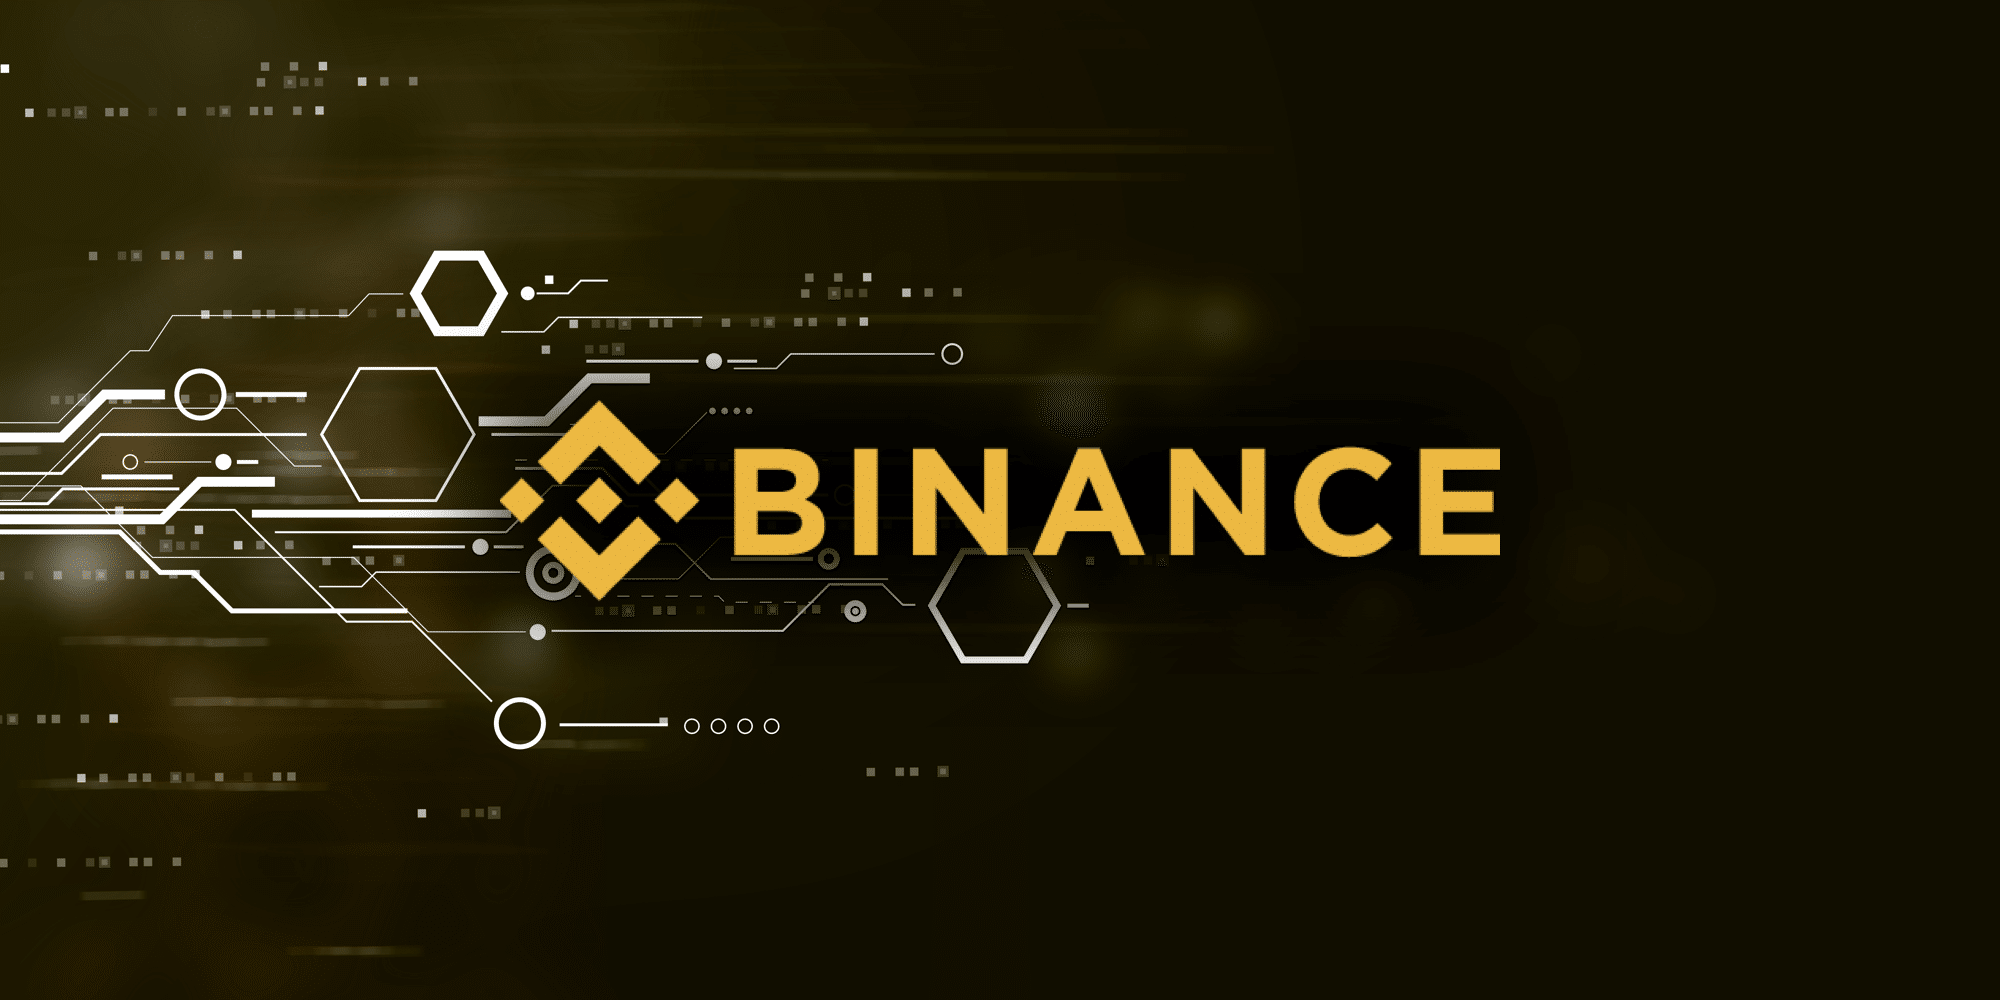 Binanace